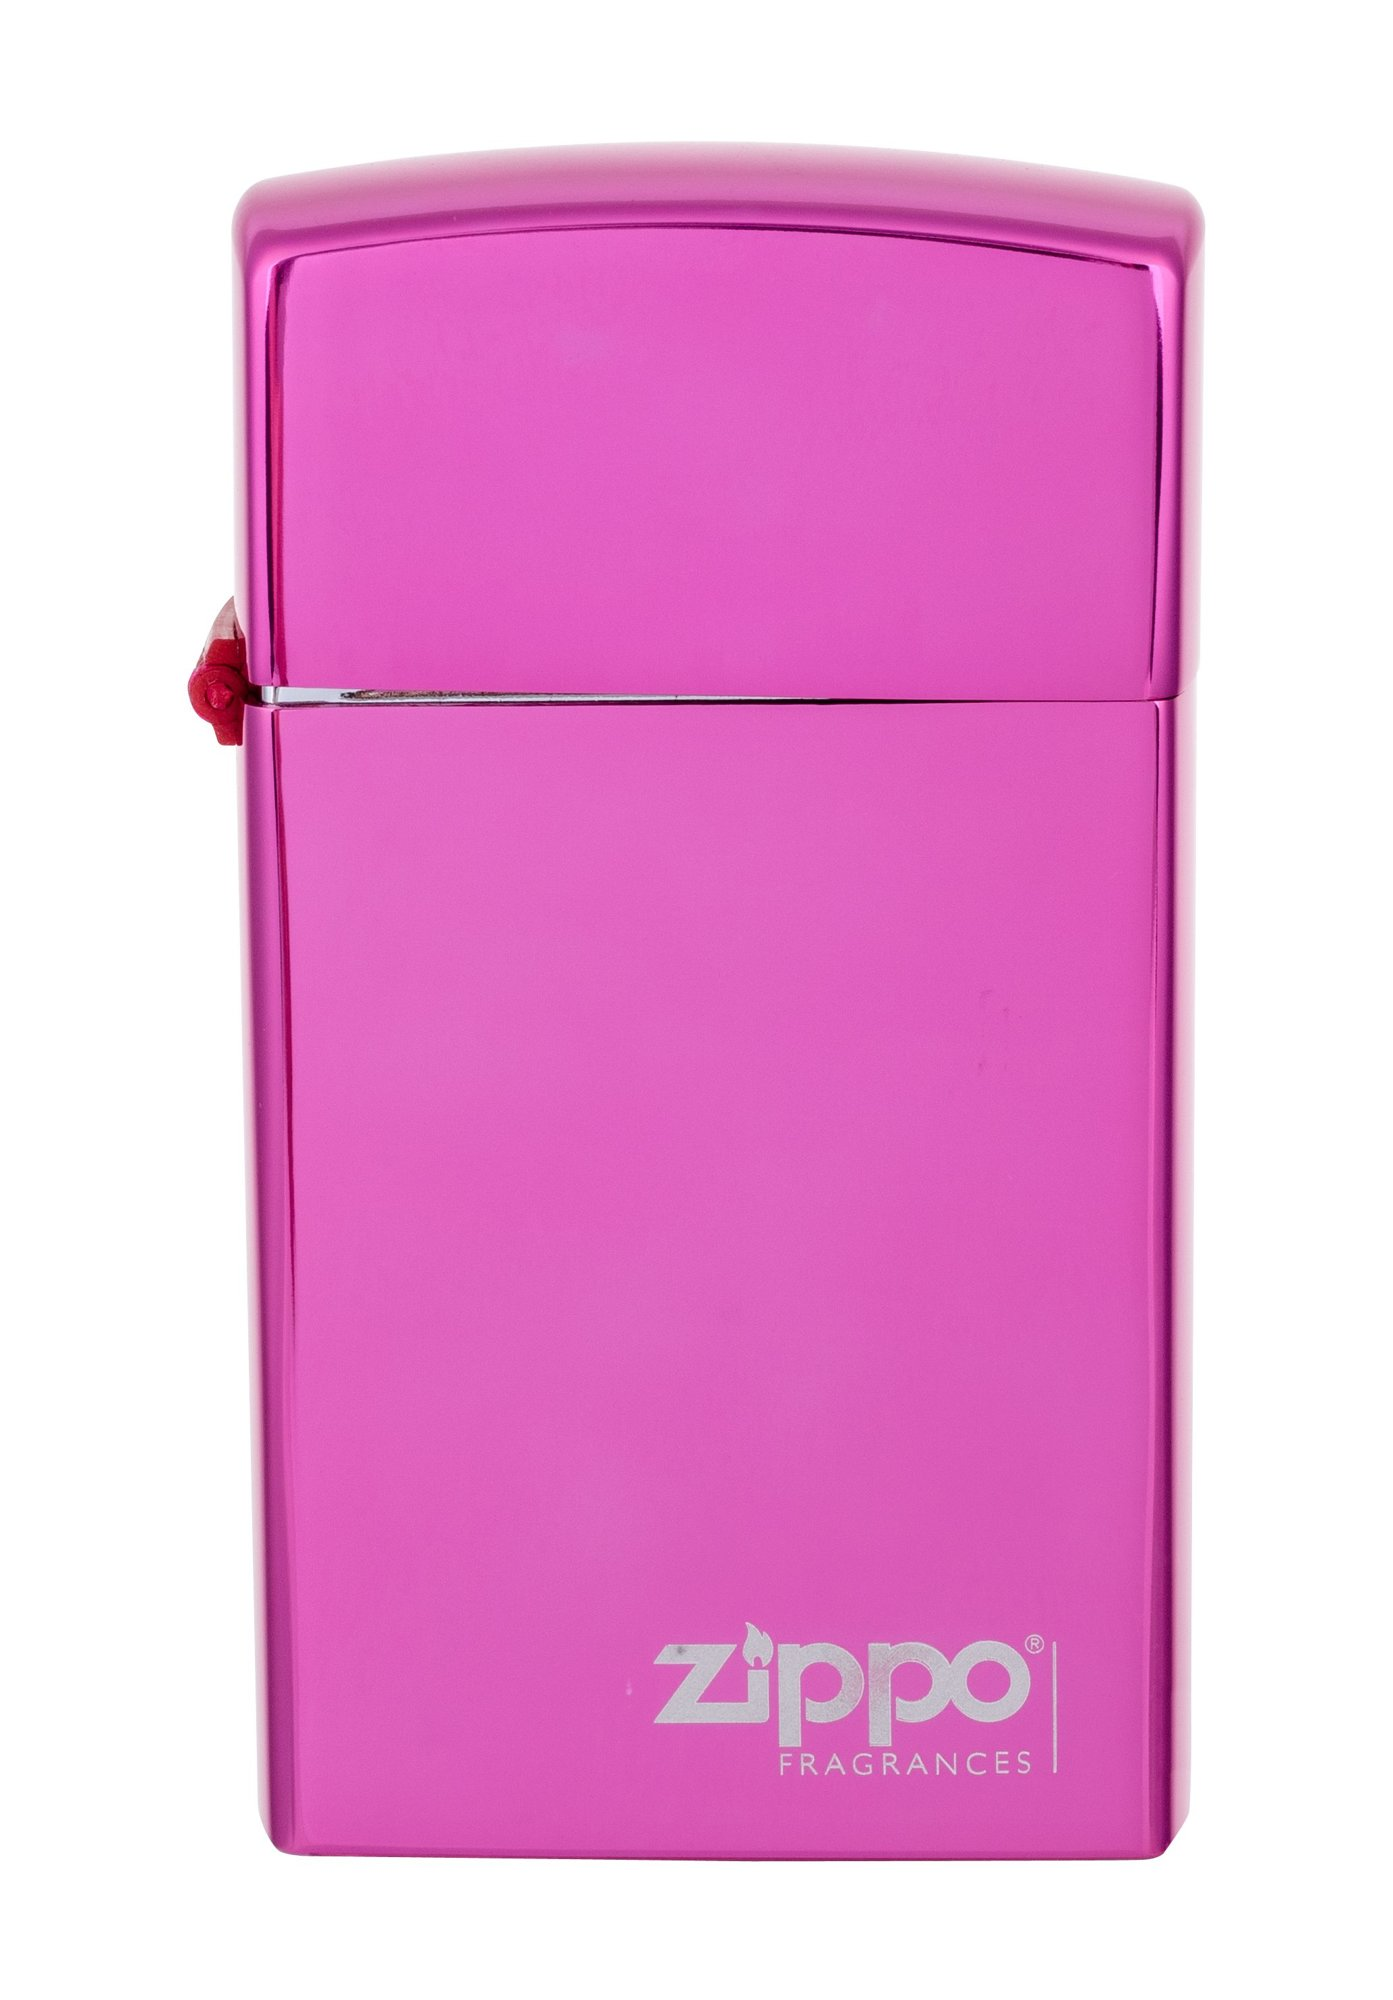 Zippo Fragrances The Original EDT 50ml